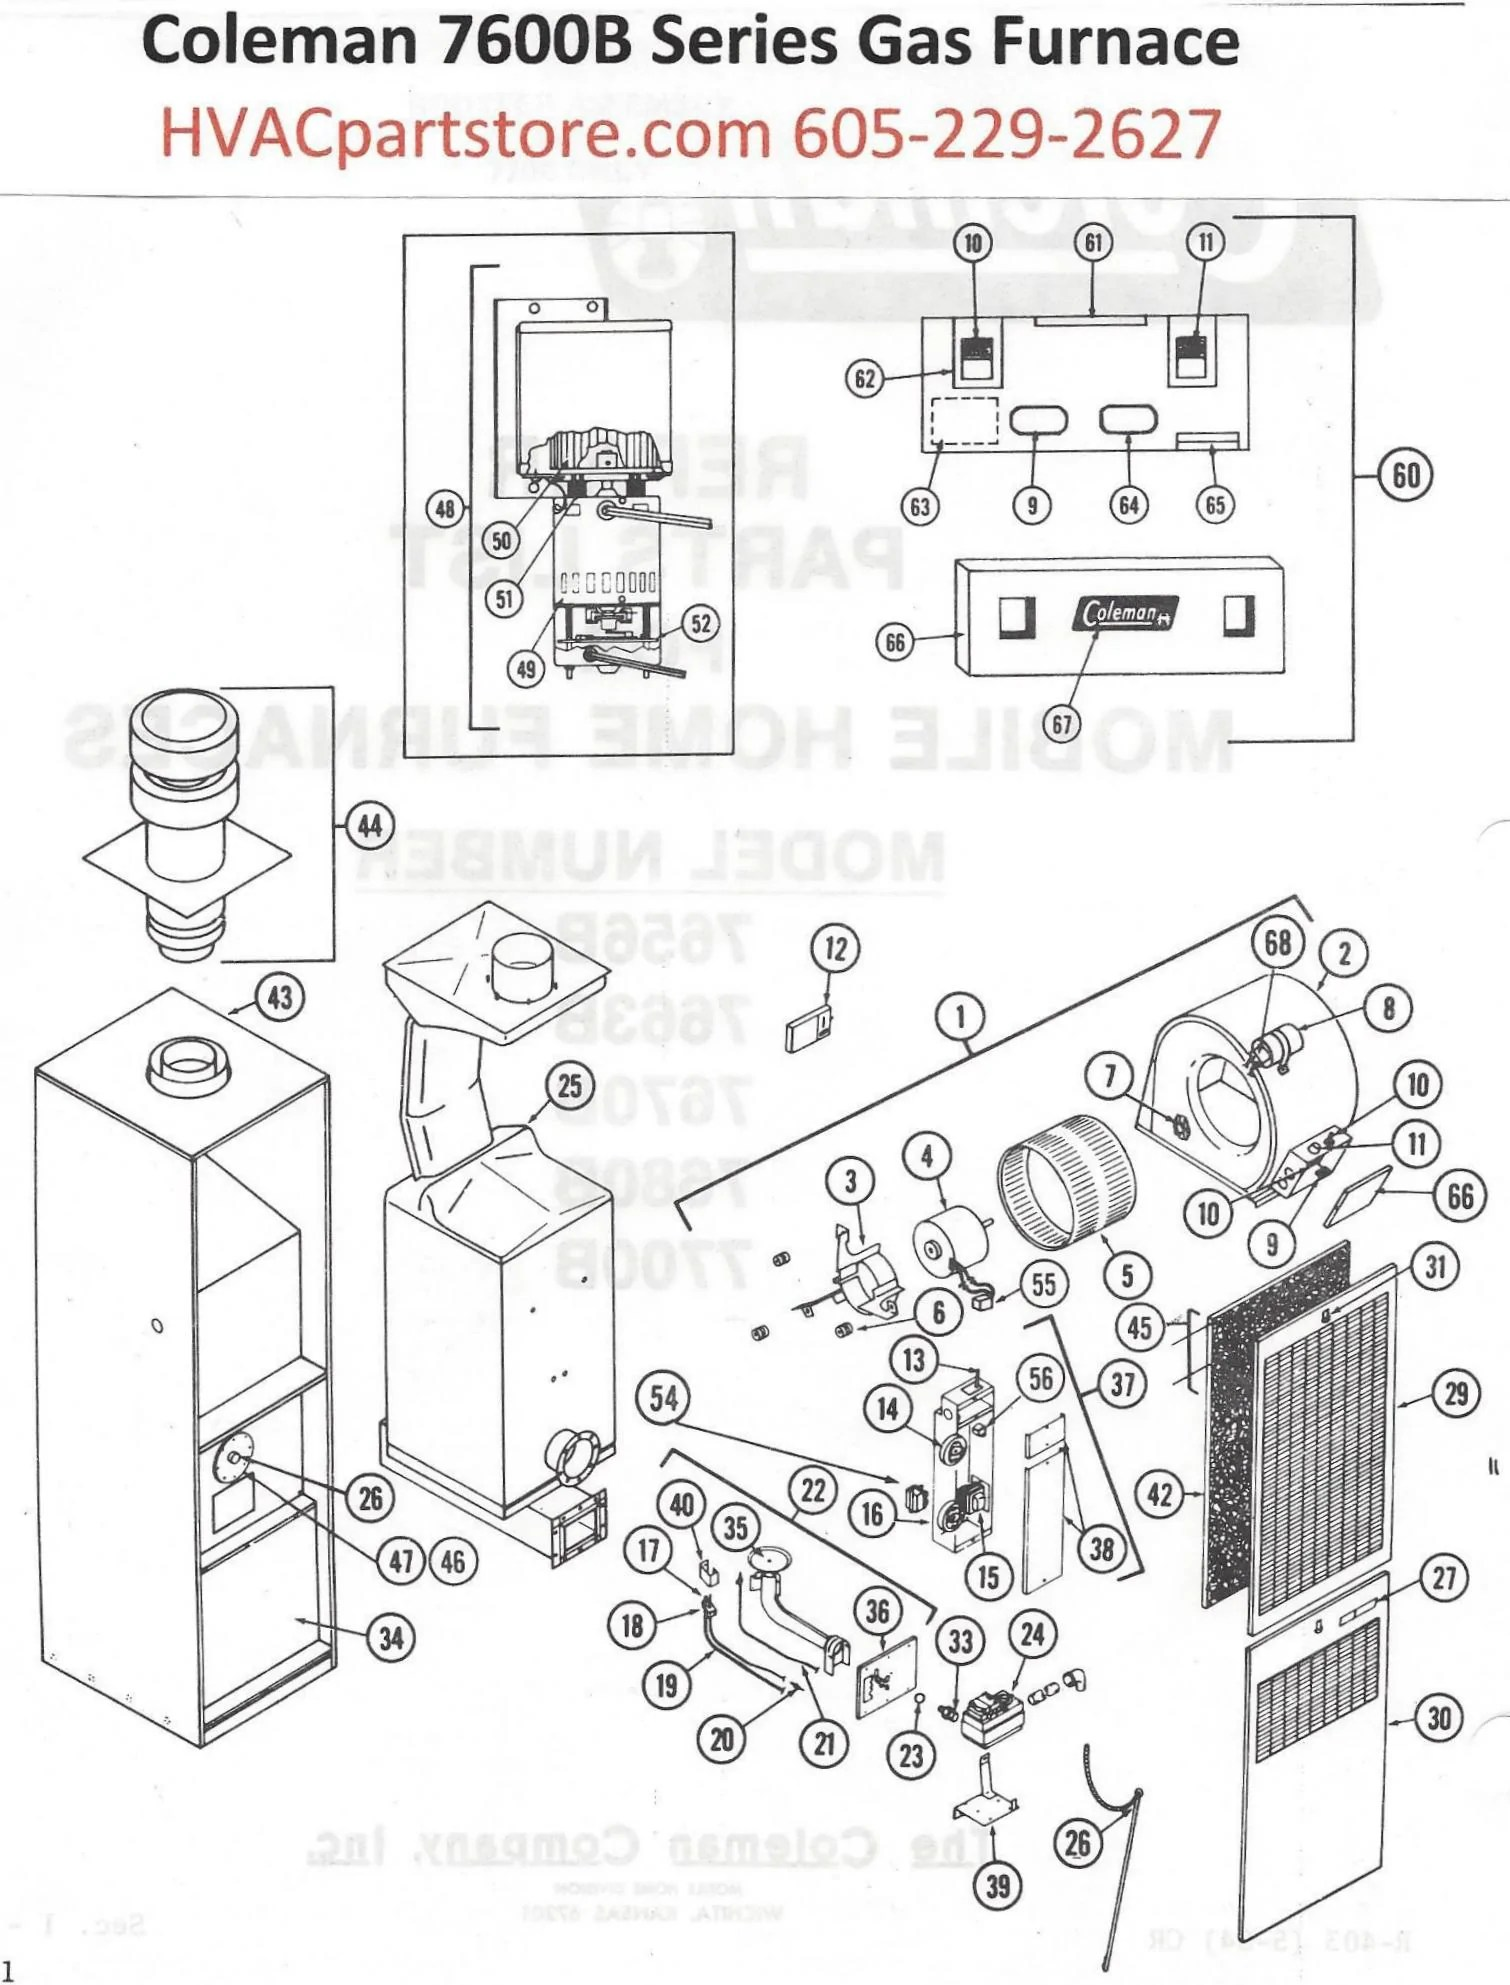 medium resolution of coleman gas furnace wiring diagram simple wiring schema7680b856 coleman gas furnace parts hvacpartstore coleman gas furnace